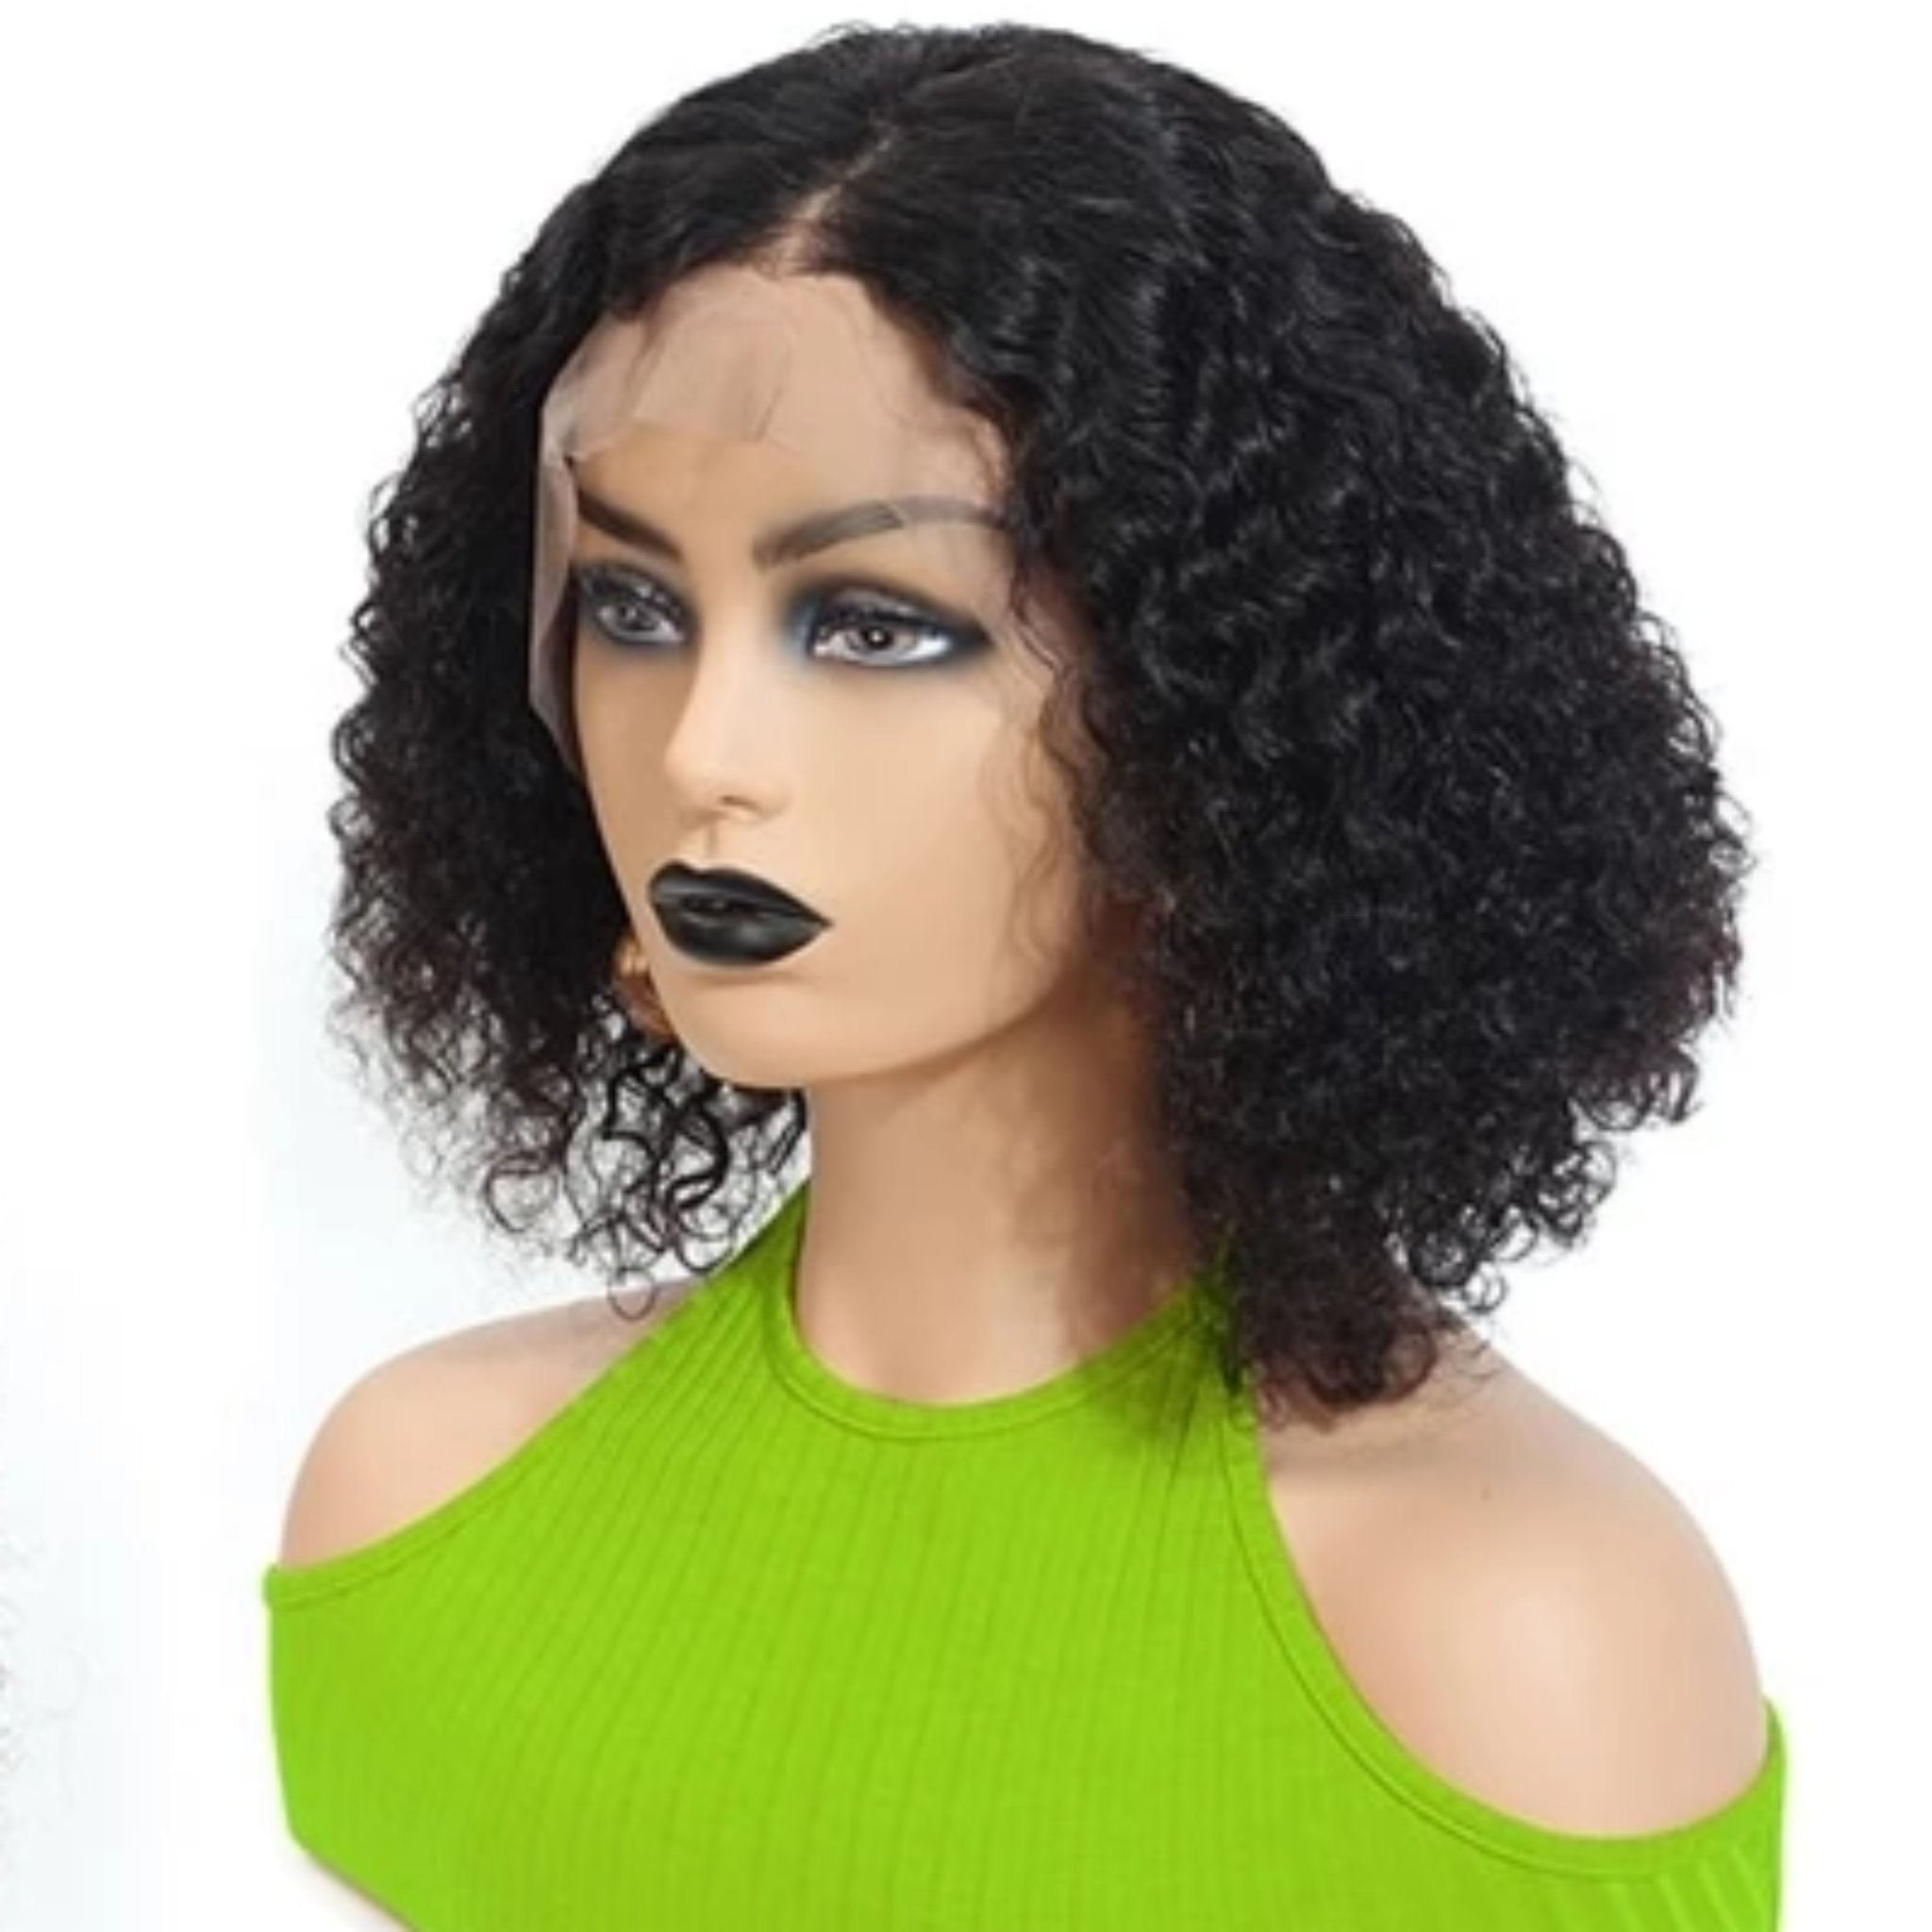 Peruvian Curly Lace Front Human Hair Wigs - Fresh Hair Extensions and Accessories